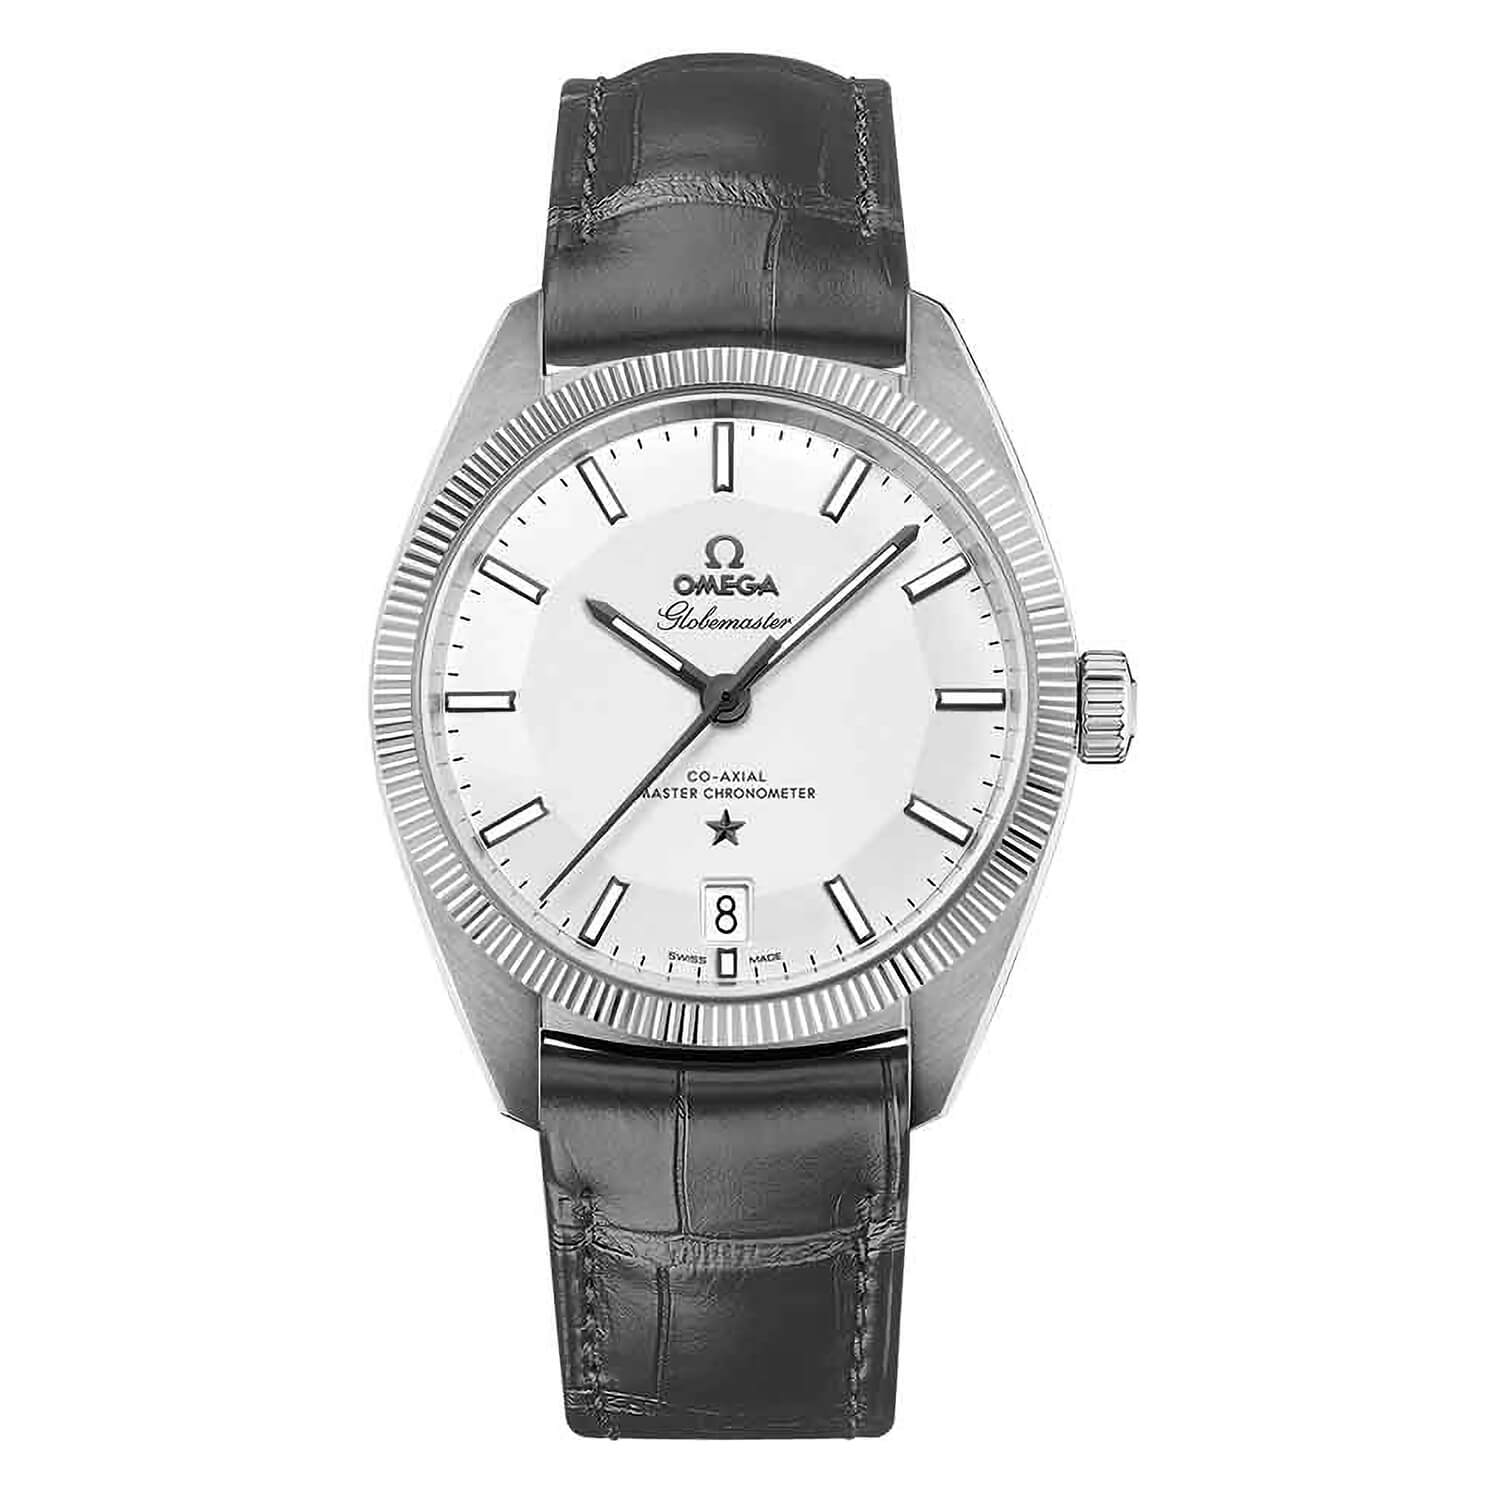 Omega Constellation Globemaster men's automatic grey leather strap watch